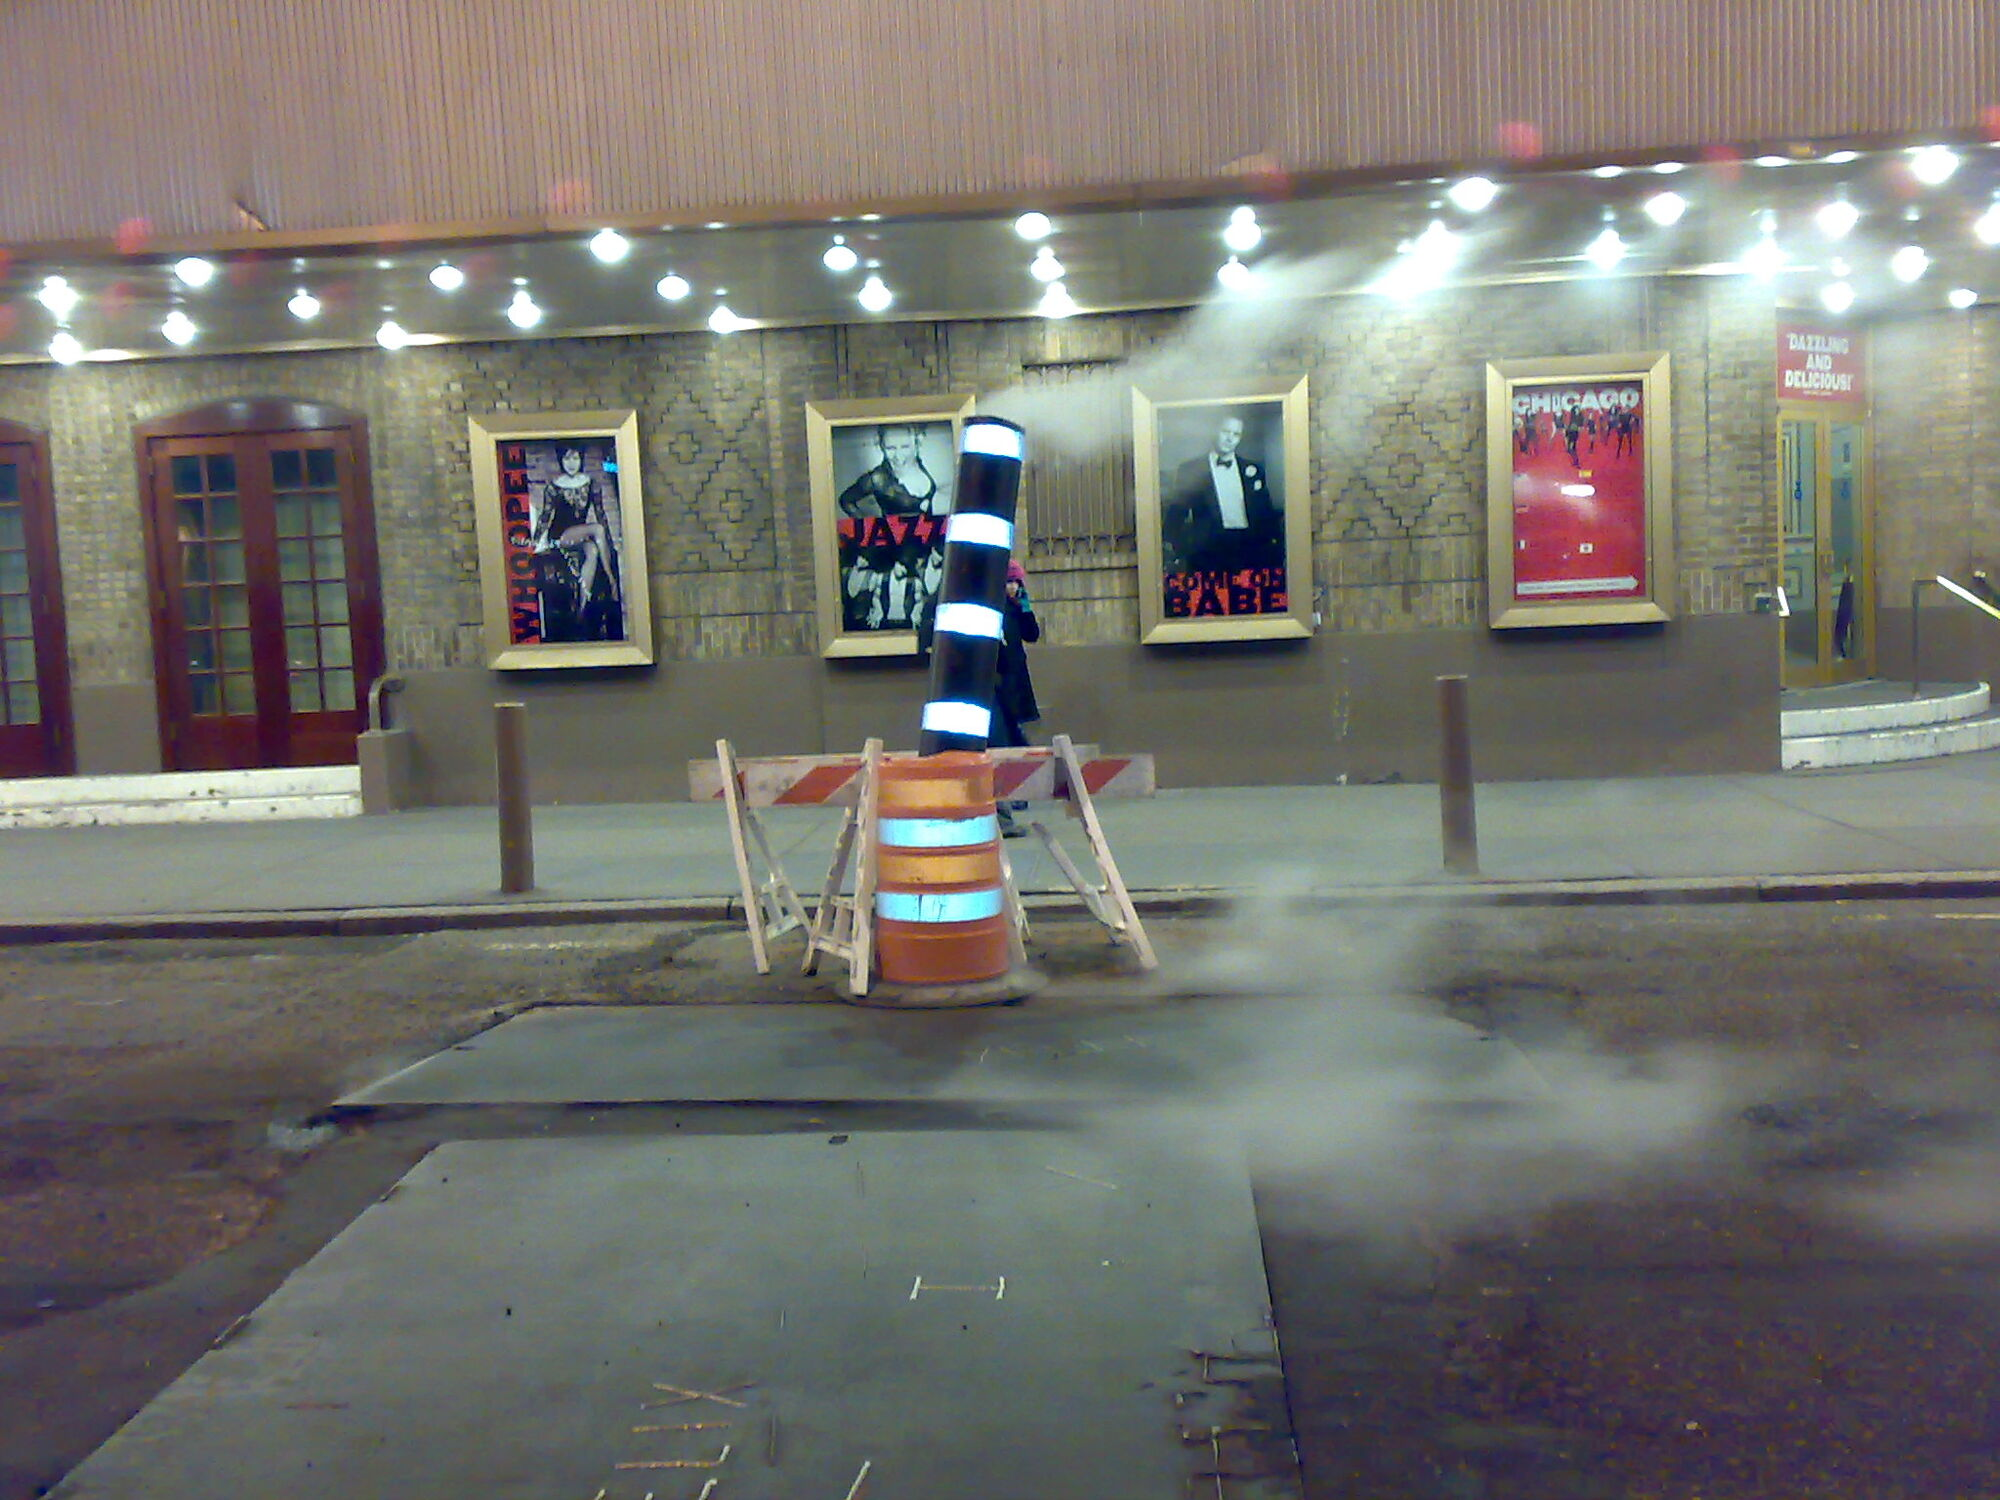 Roads in New York smoke. You see constant hissing and fumes from the underground.